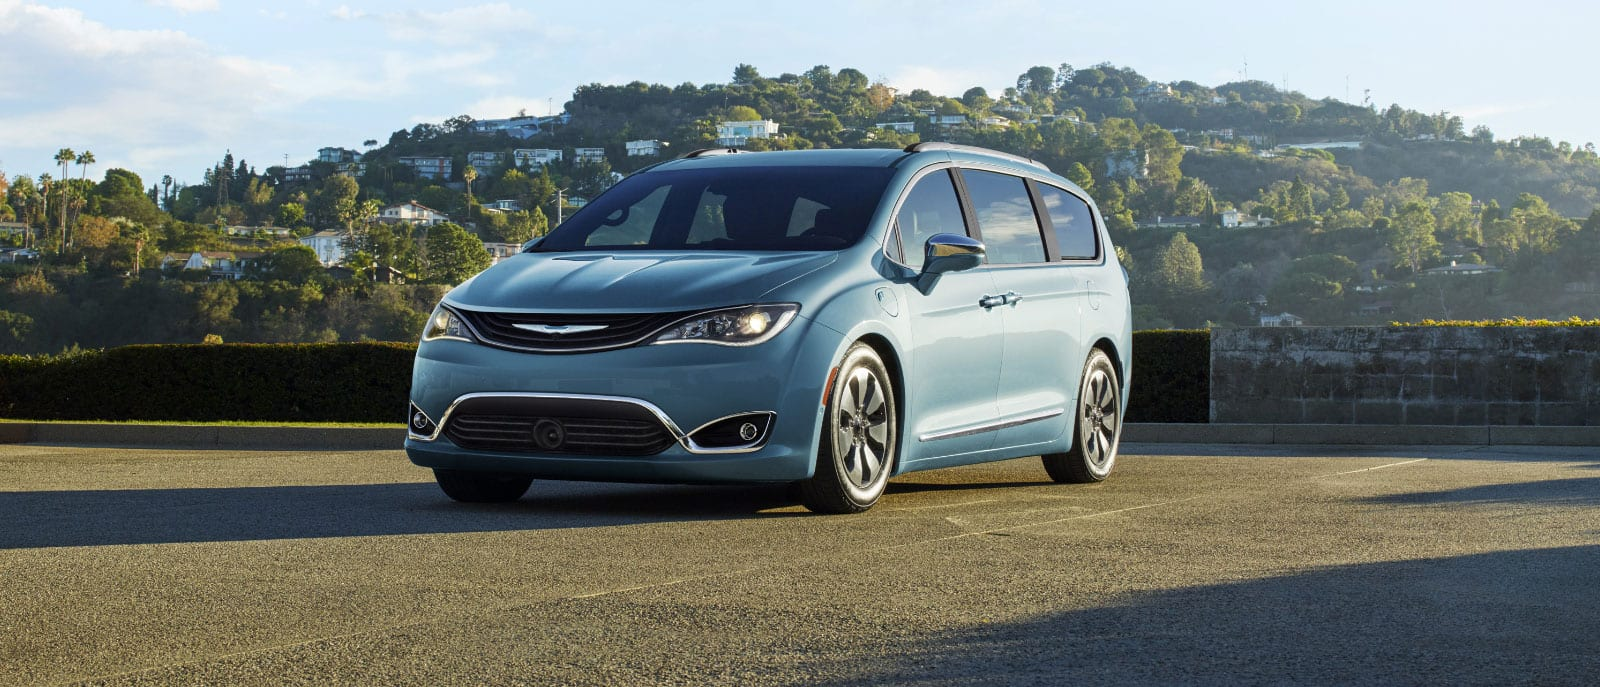 new 2017 chrysler pacifica for sale near nashville tn hendersonville tn lease or buy a new. Black Bedroom Furniture Sets. Home Design Ideas